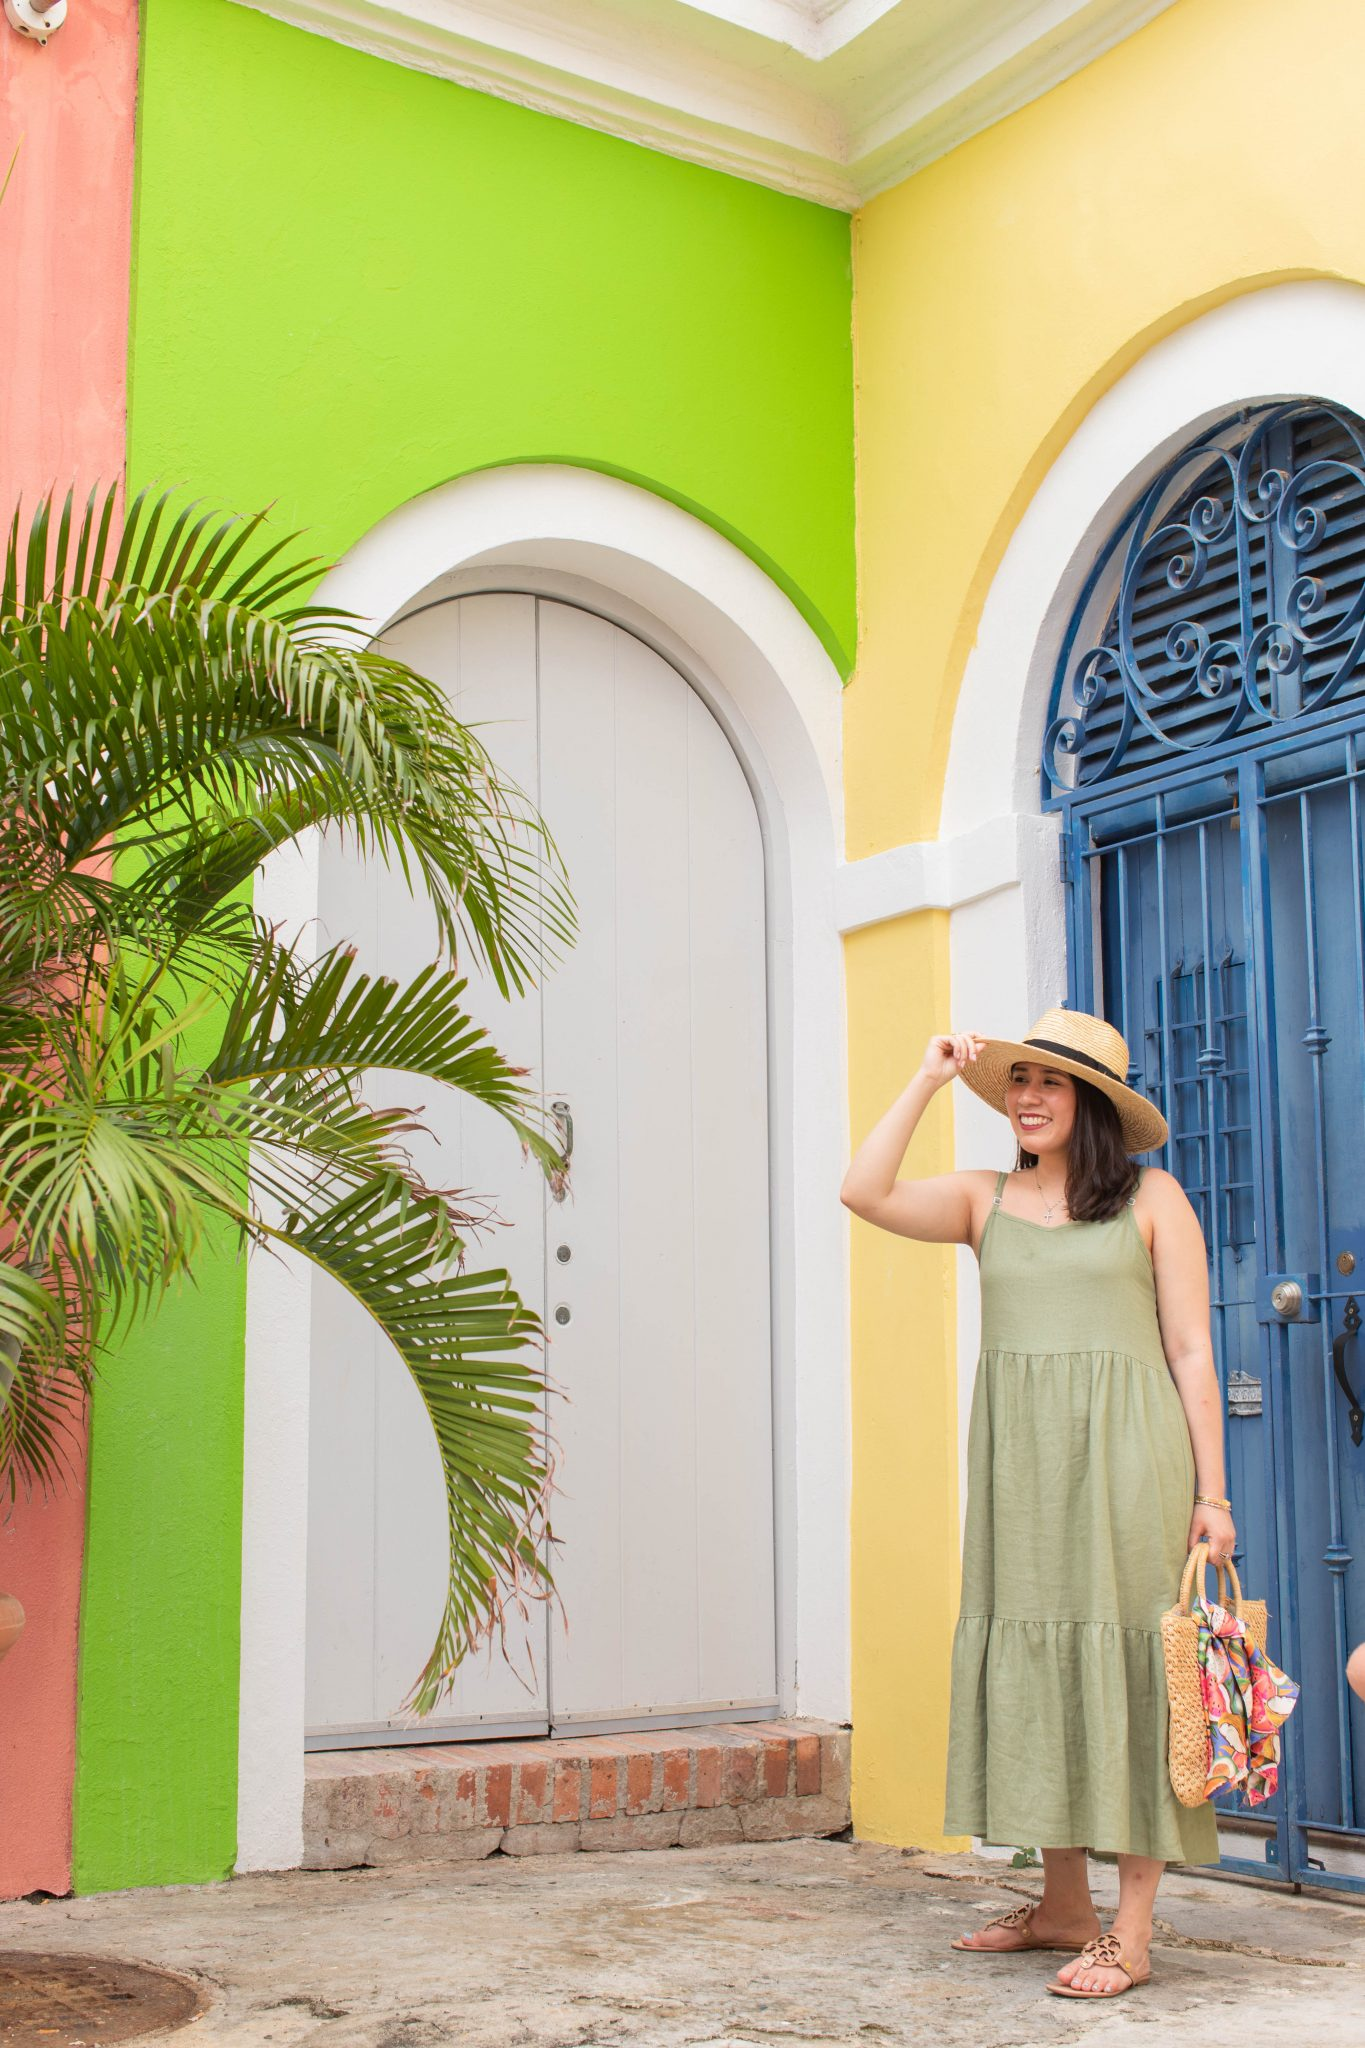 5 Essential Tips To Create Original Content And Grow Your Brand by popular New York influencer blog, Life Laugh Linda: image of a woman standing outside in front of a yellow, pink, and neon green building with a blue door and wearing a green maxi dress, brown sandals, straw sunhat, and holding a straw bag with a scarf tied on one of the handles.